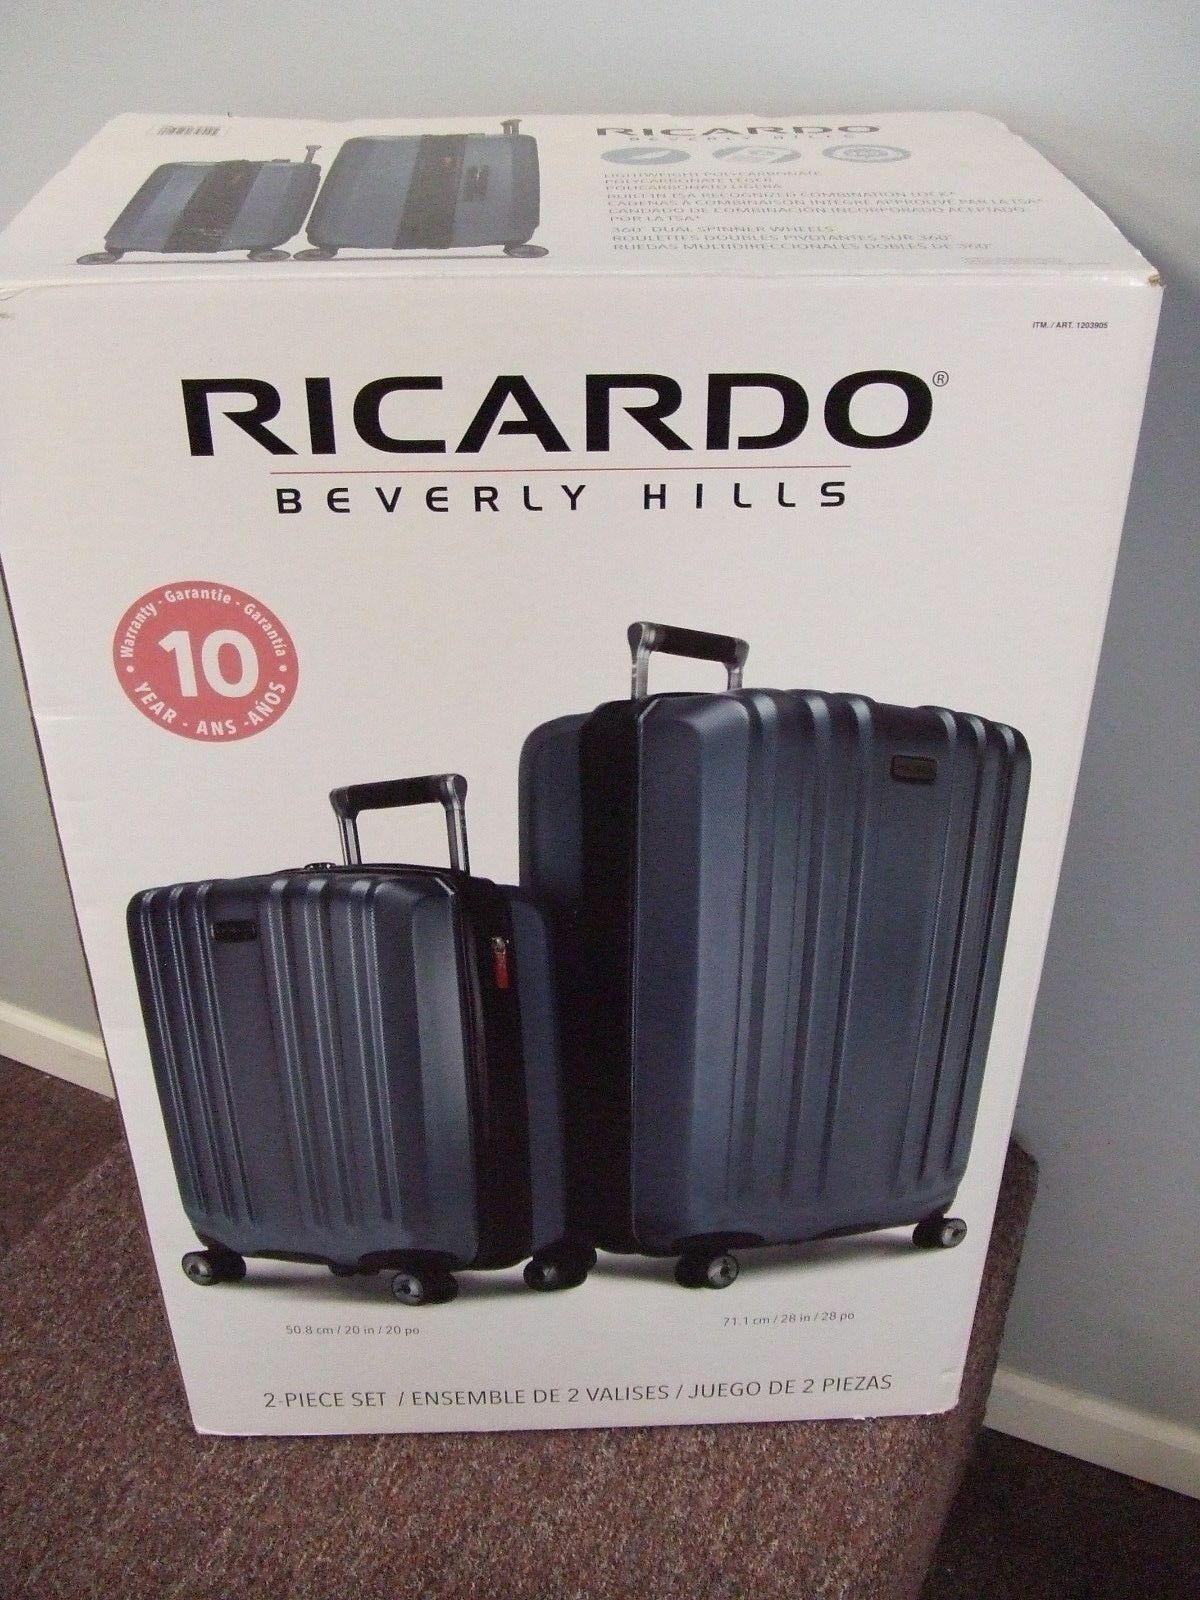 d38b3f6be Ricardo Beverly Hills Mulholland Drive 2 Piece Luggage Set Suitcase ...